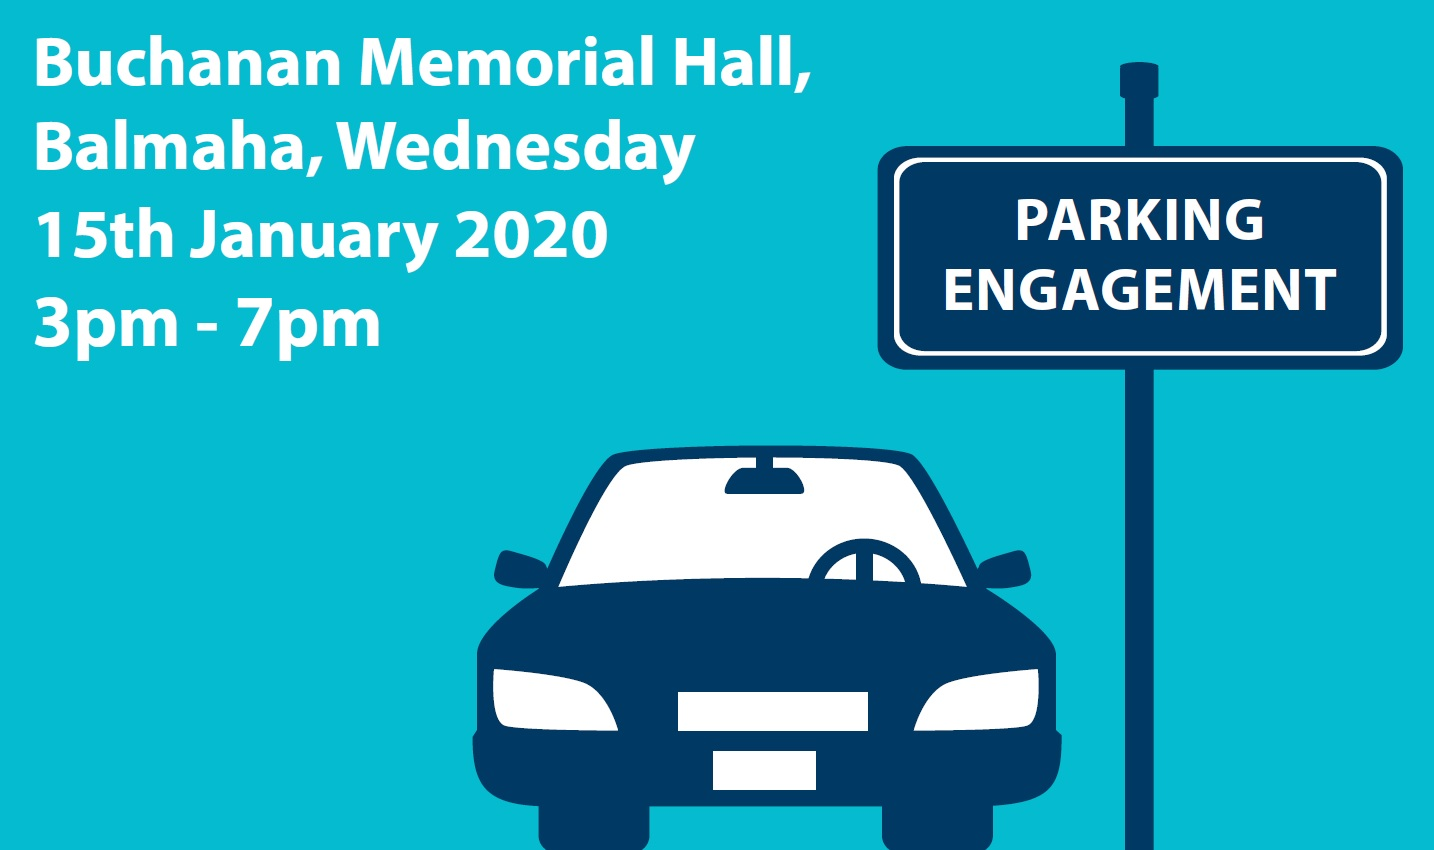 Parking sign for Buchanan Memorial Hall